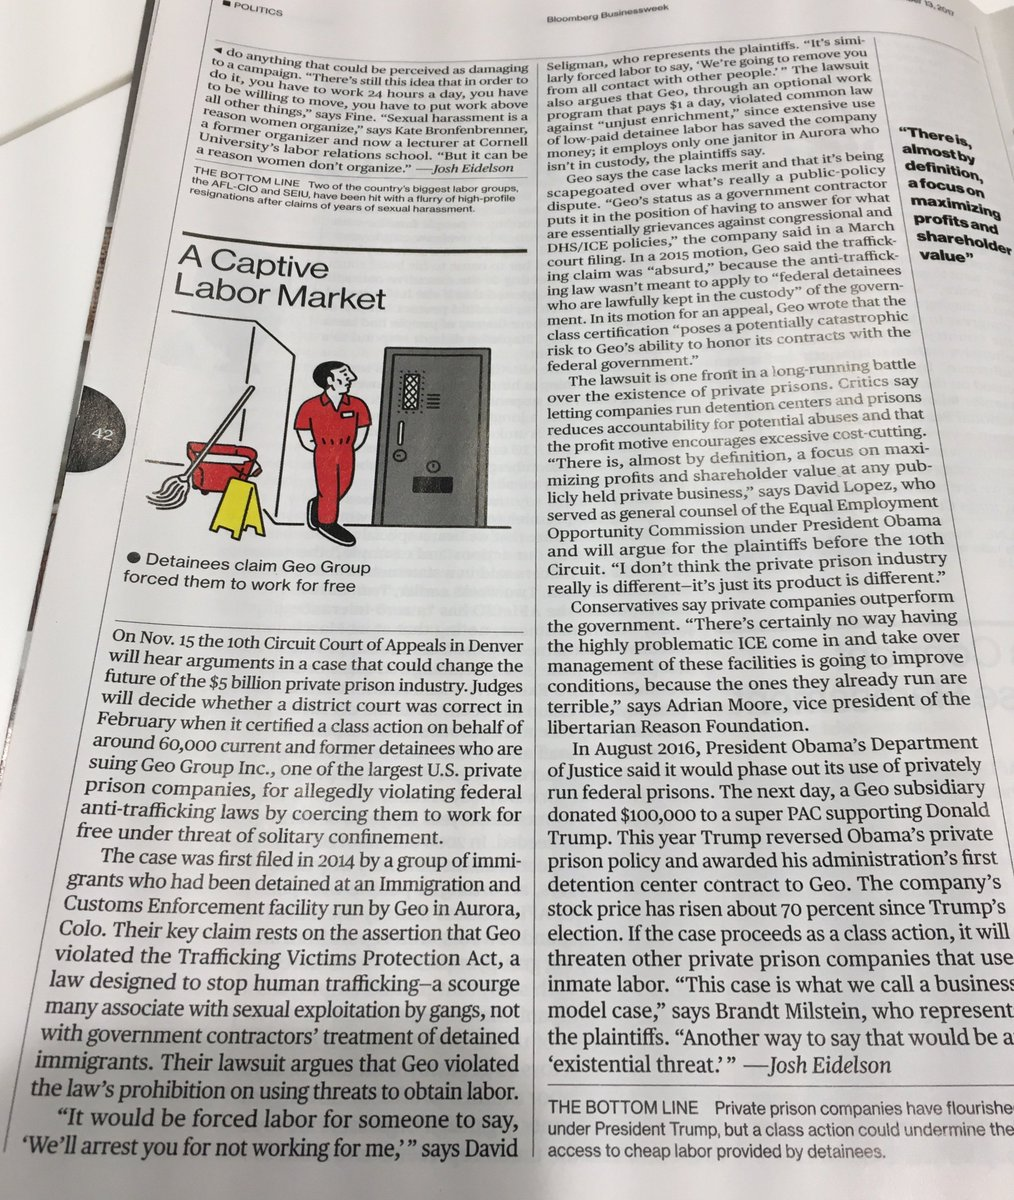 For this week's @BW, I wrote about sexual harassment in the labor movement - https://t.co/ffDijDQW7c - and alleged forced labor in immigrant detention https://t.co/K7ZP0Yy3cg